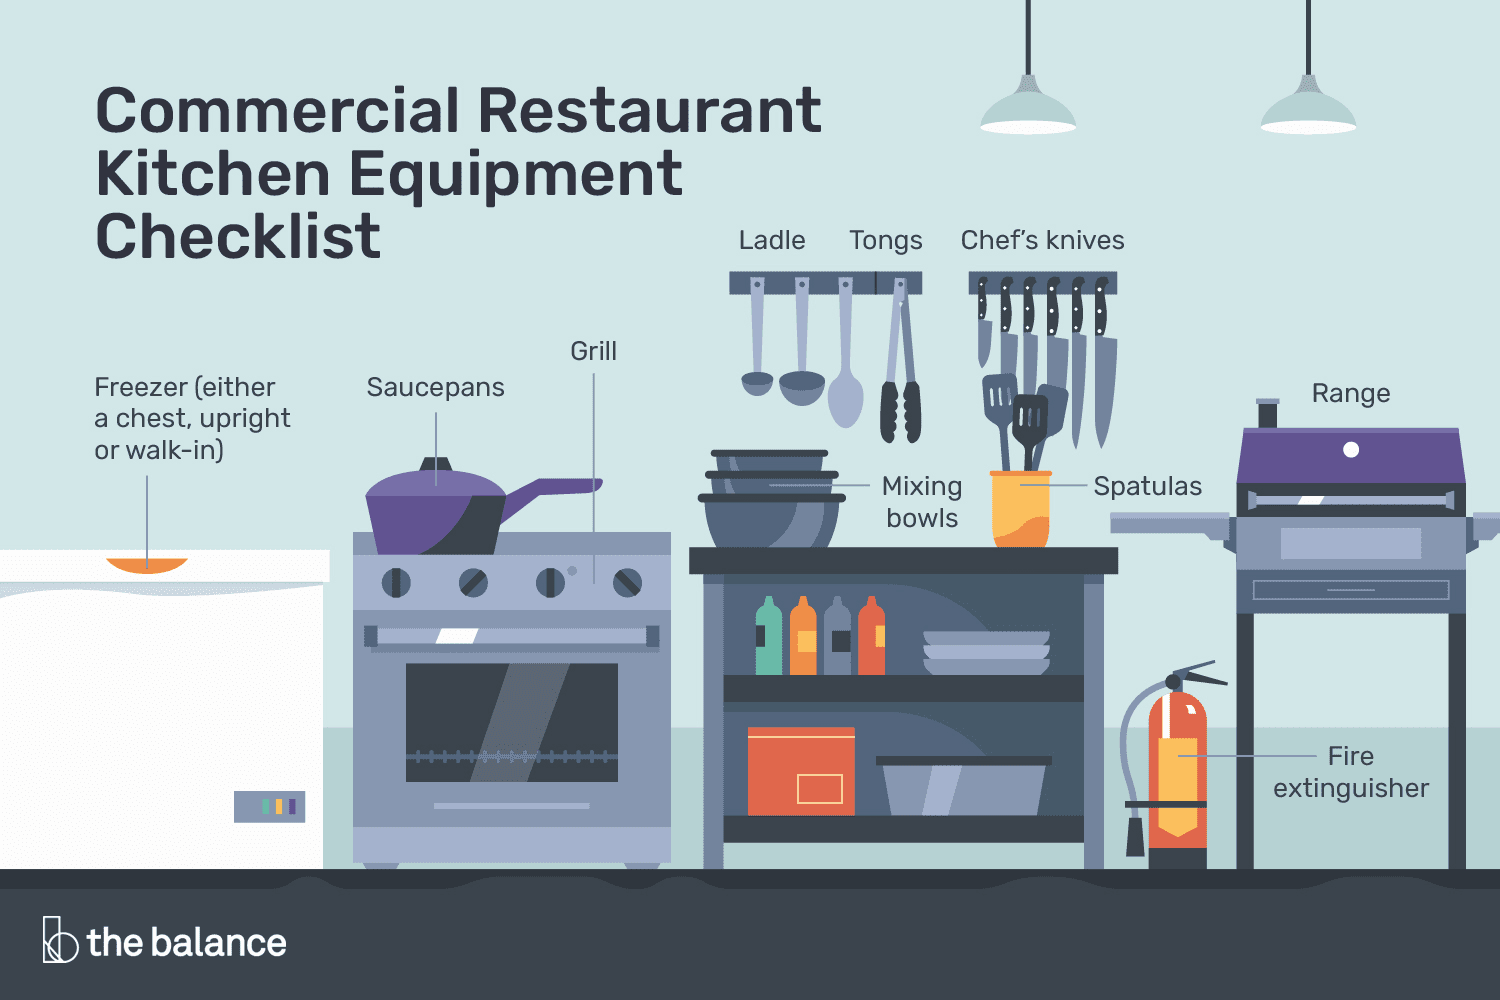 hight resolution of commercial kitchen equipment checklist 2888867 v7 5ba4fe764cedfd0050db4afa png